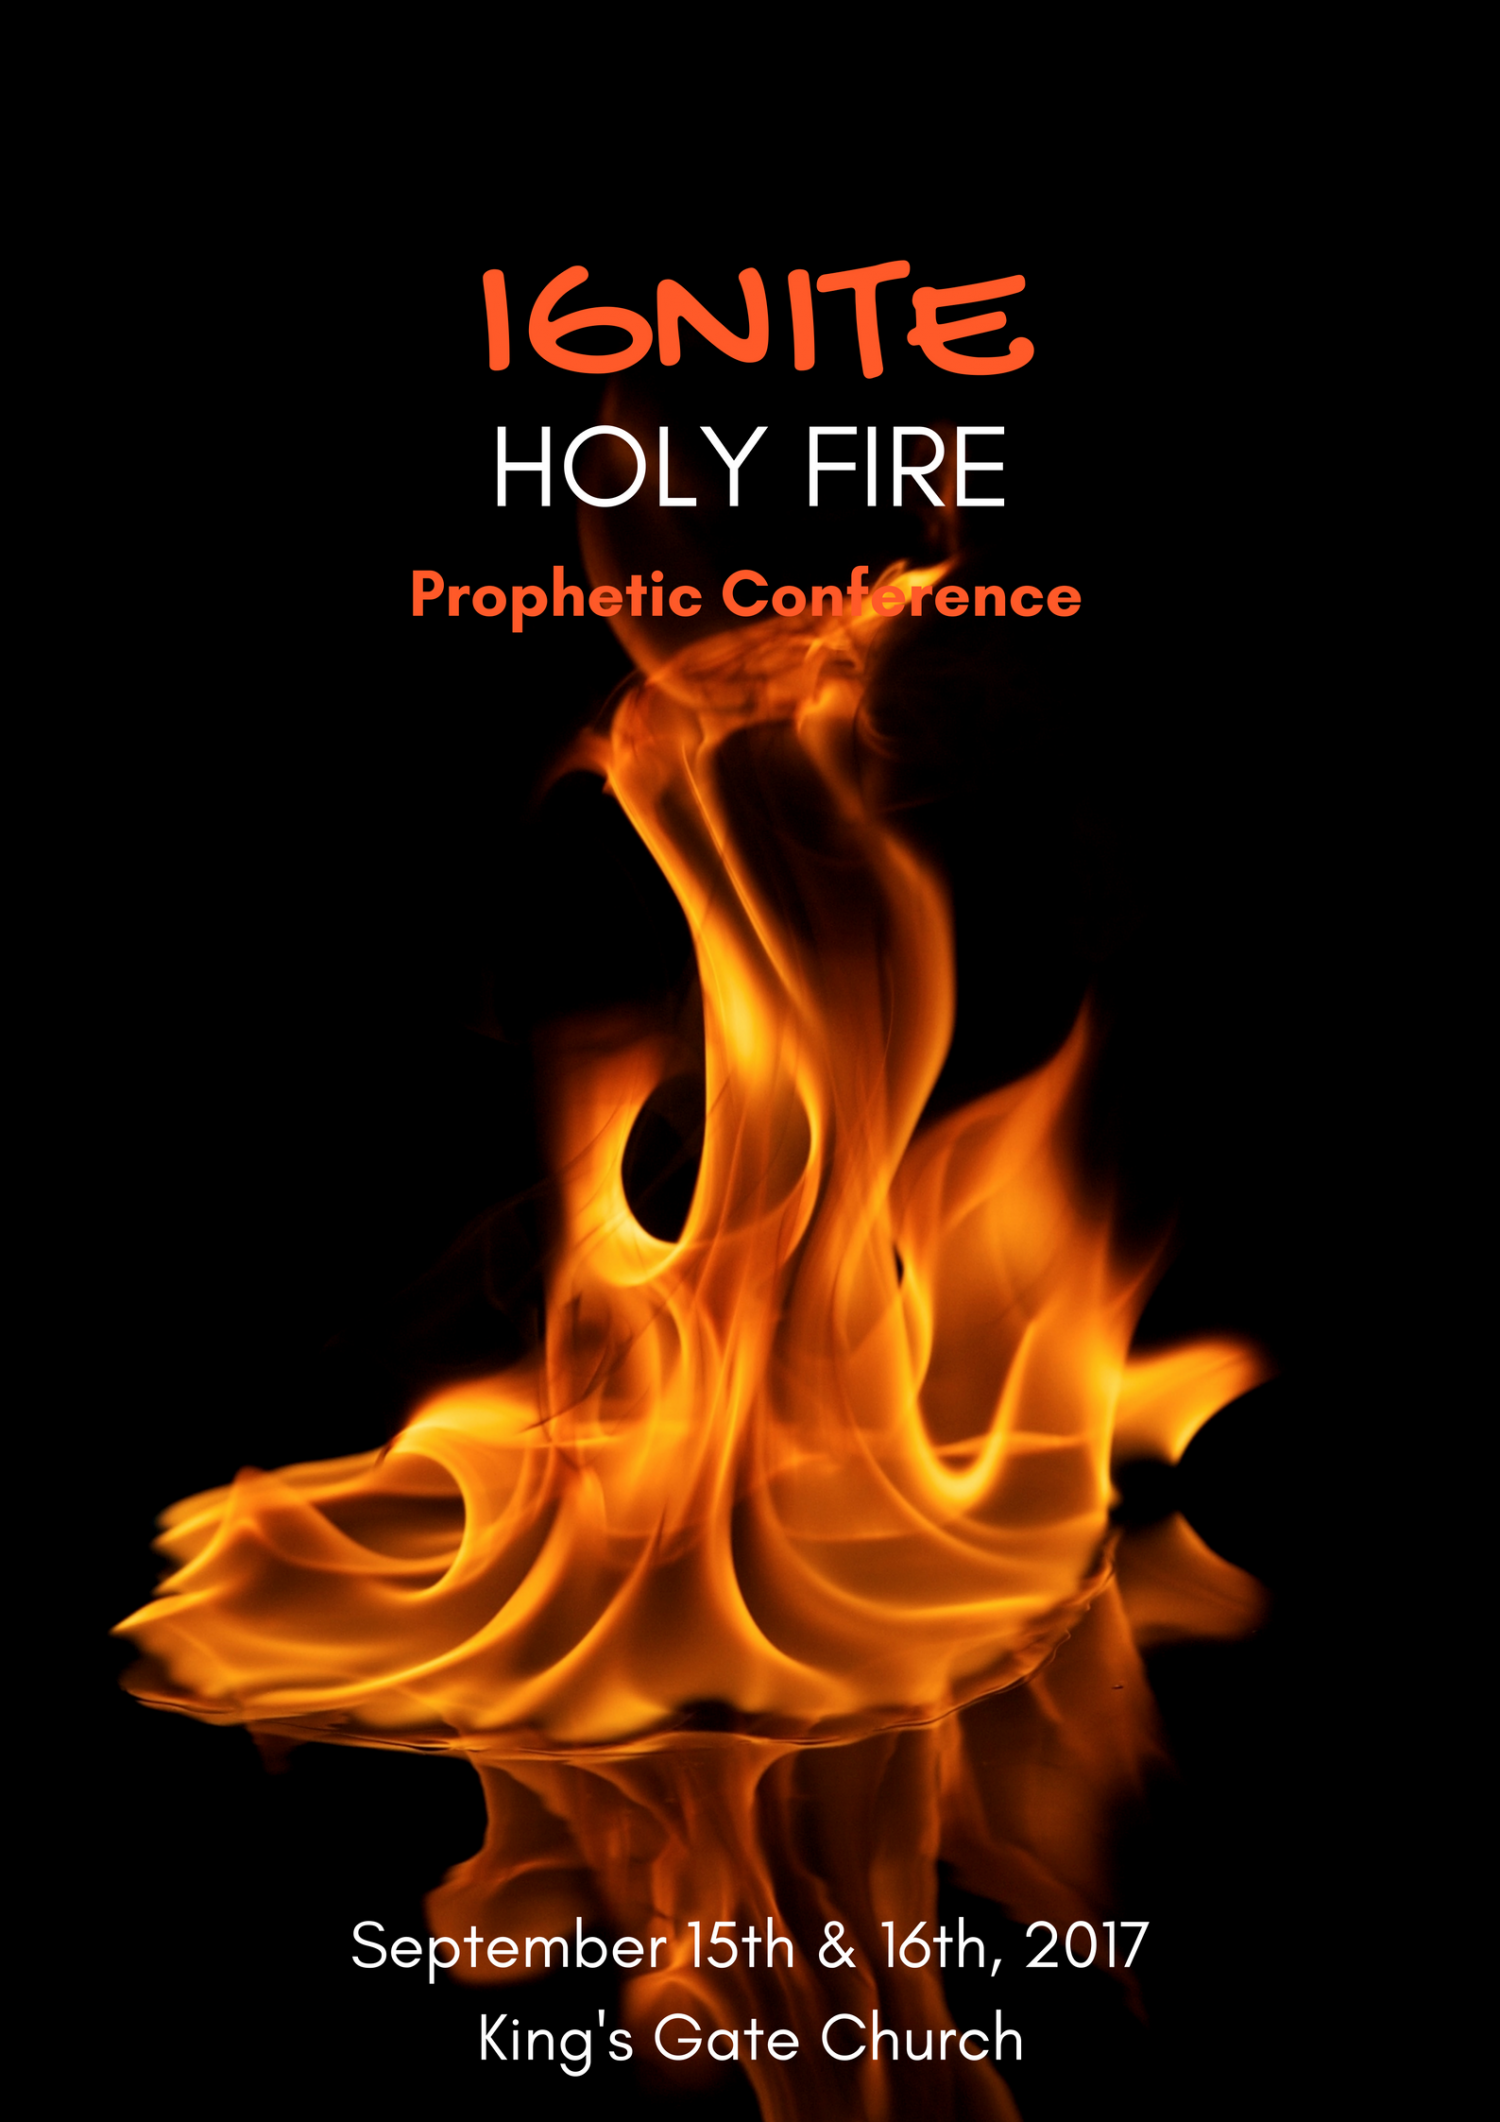 Ignite Holy Fire